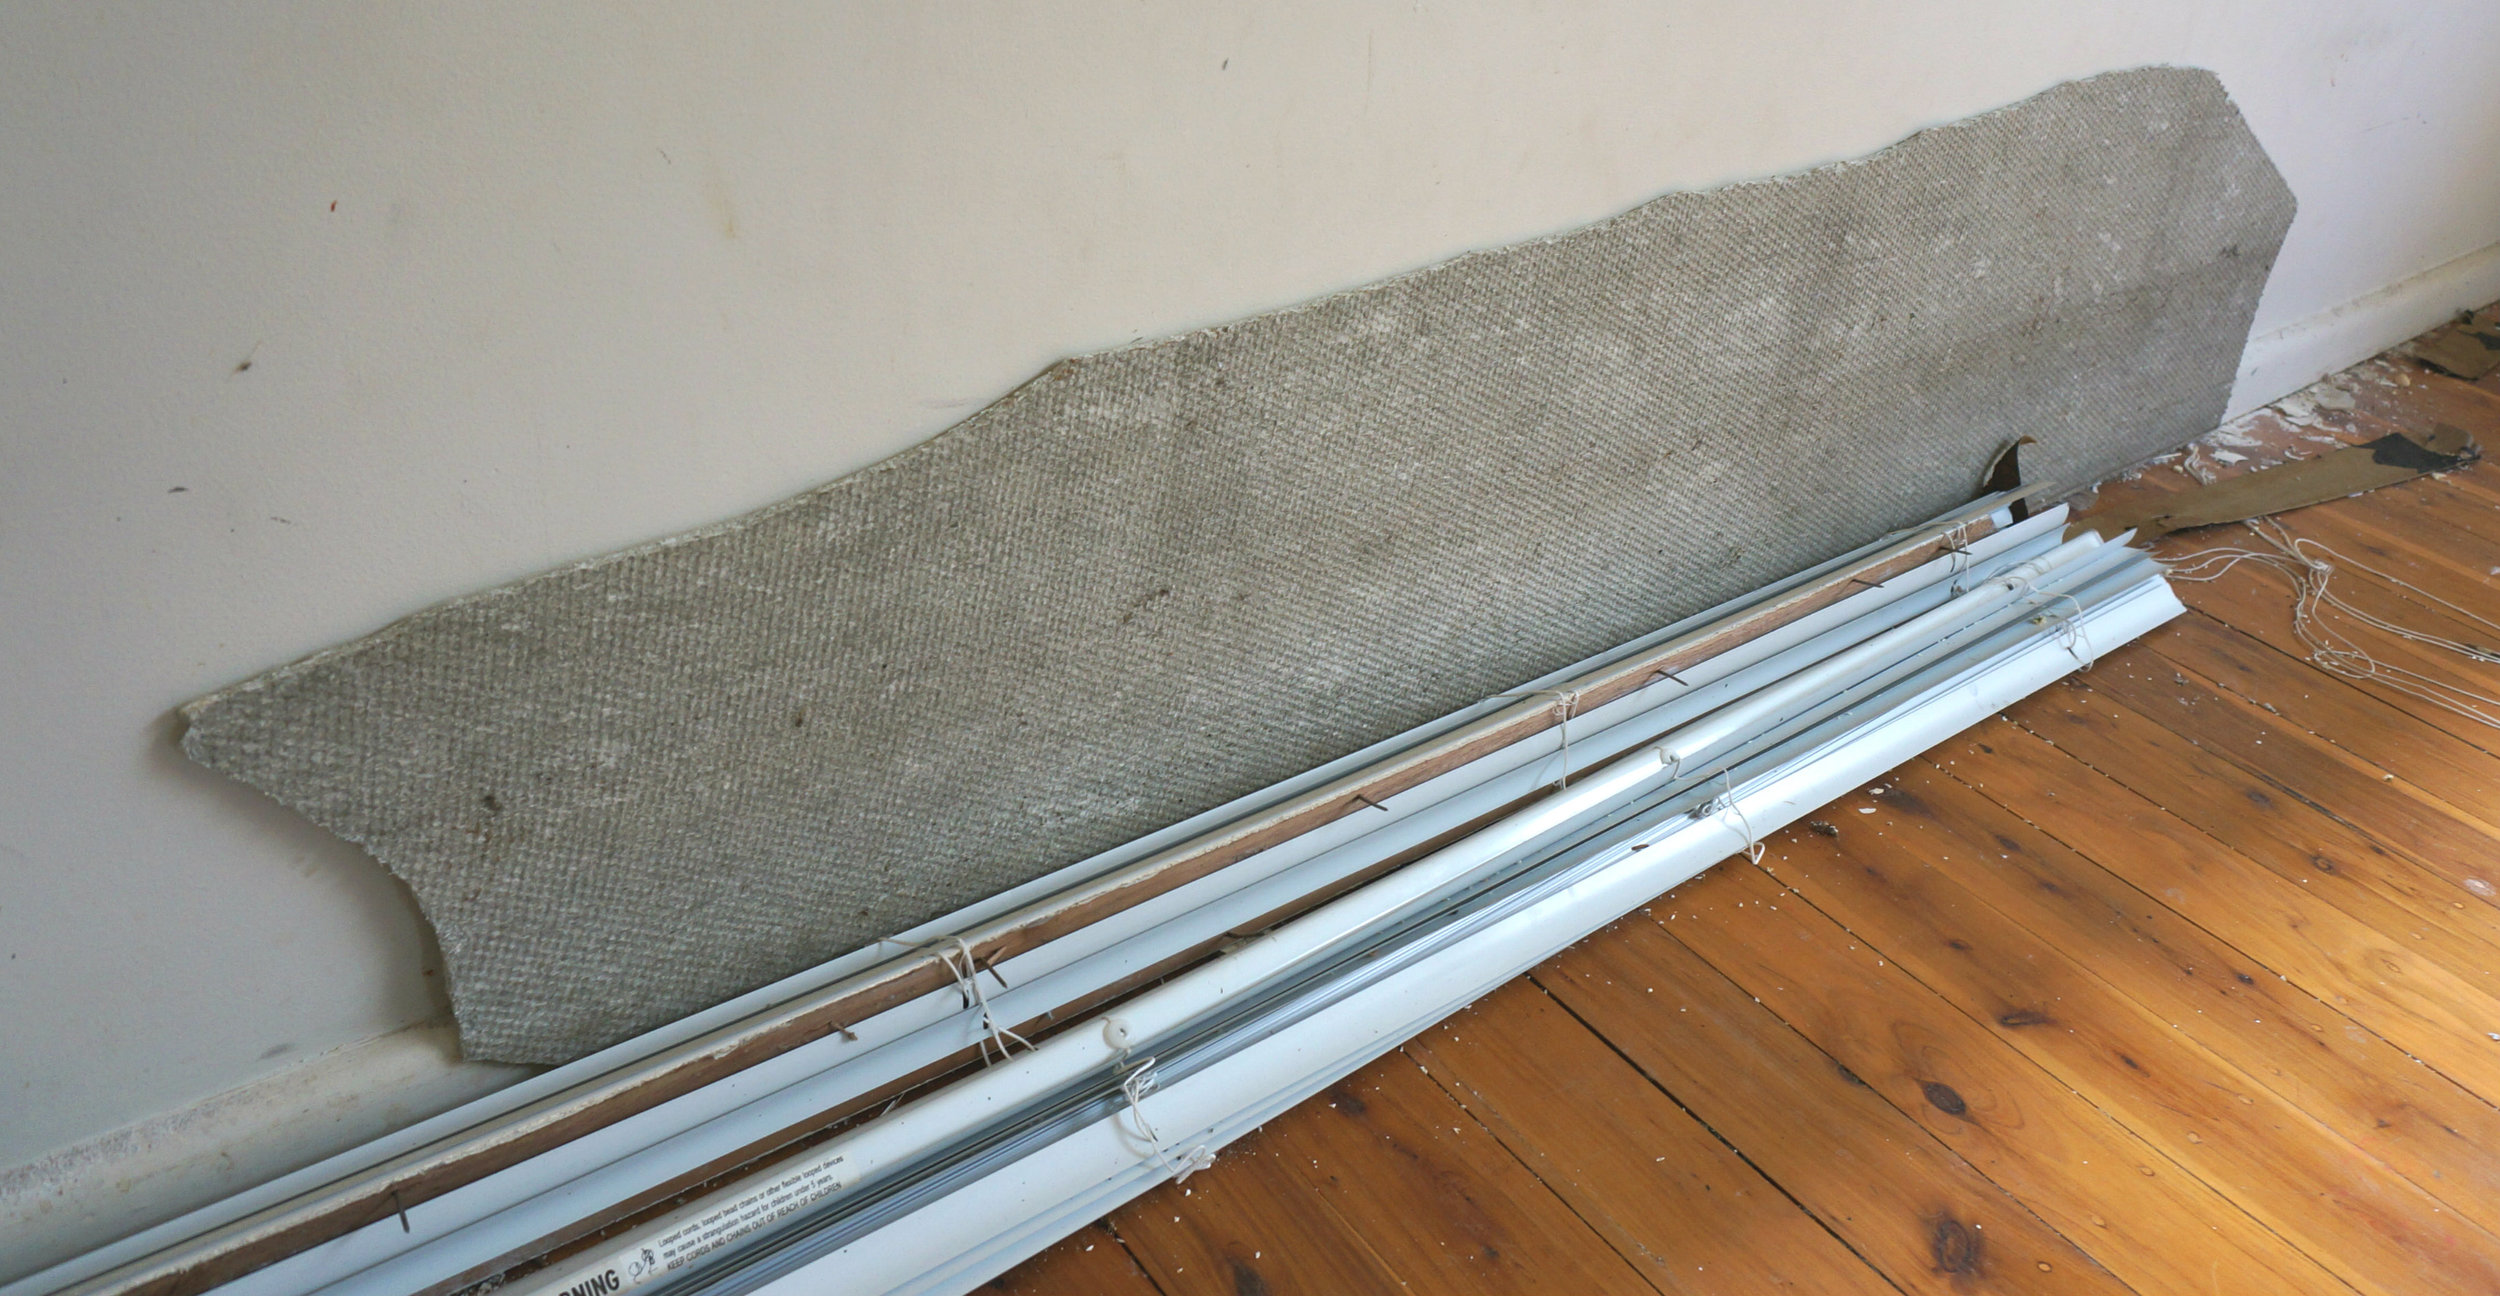 Fibro boards like these contain asbestos and are usually hidden between wood and plaster.